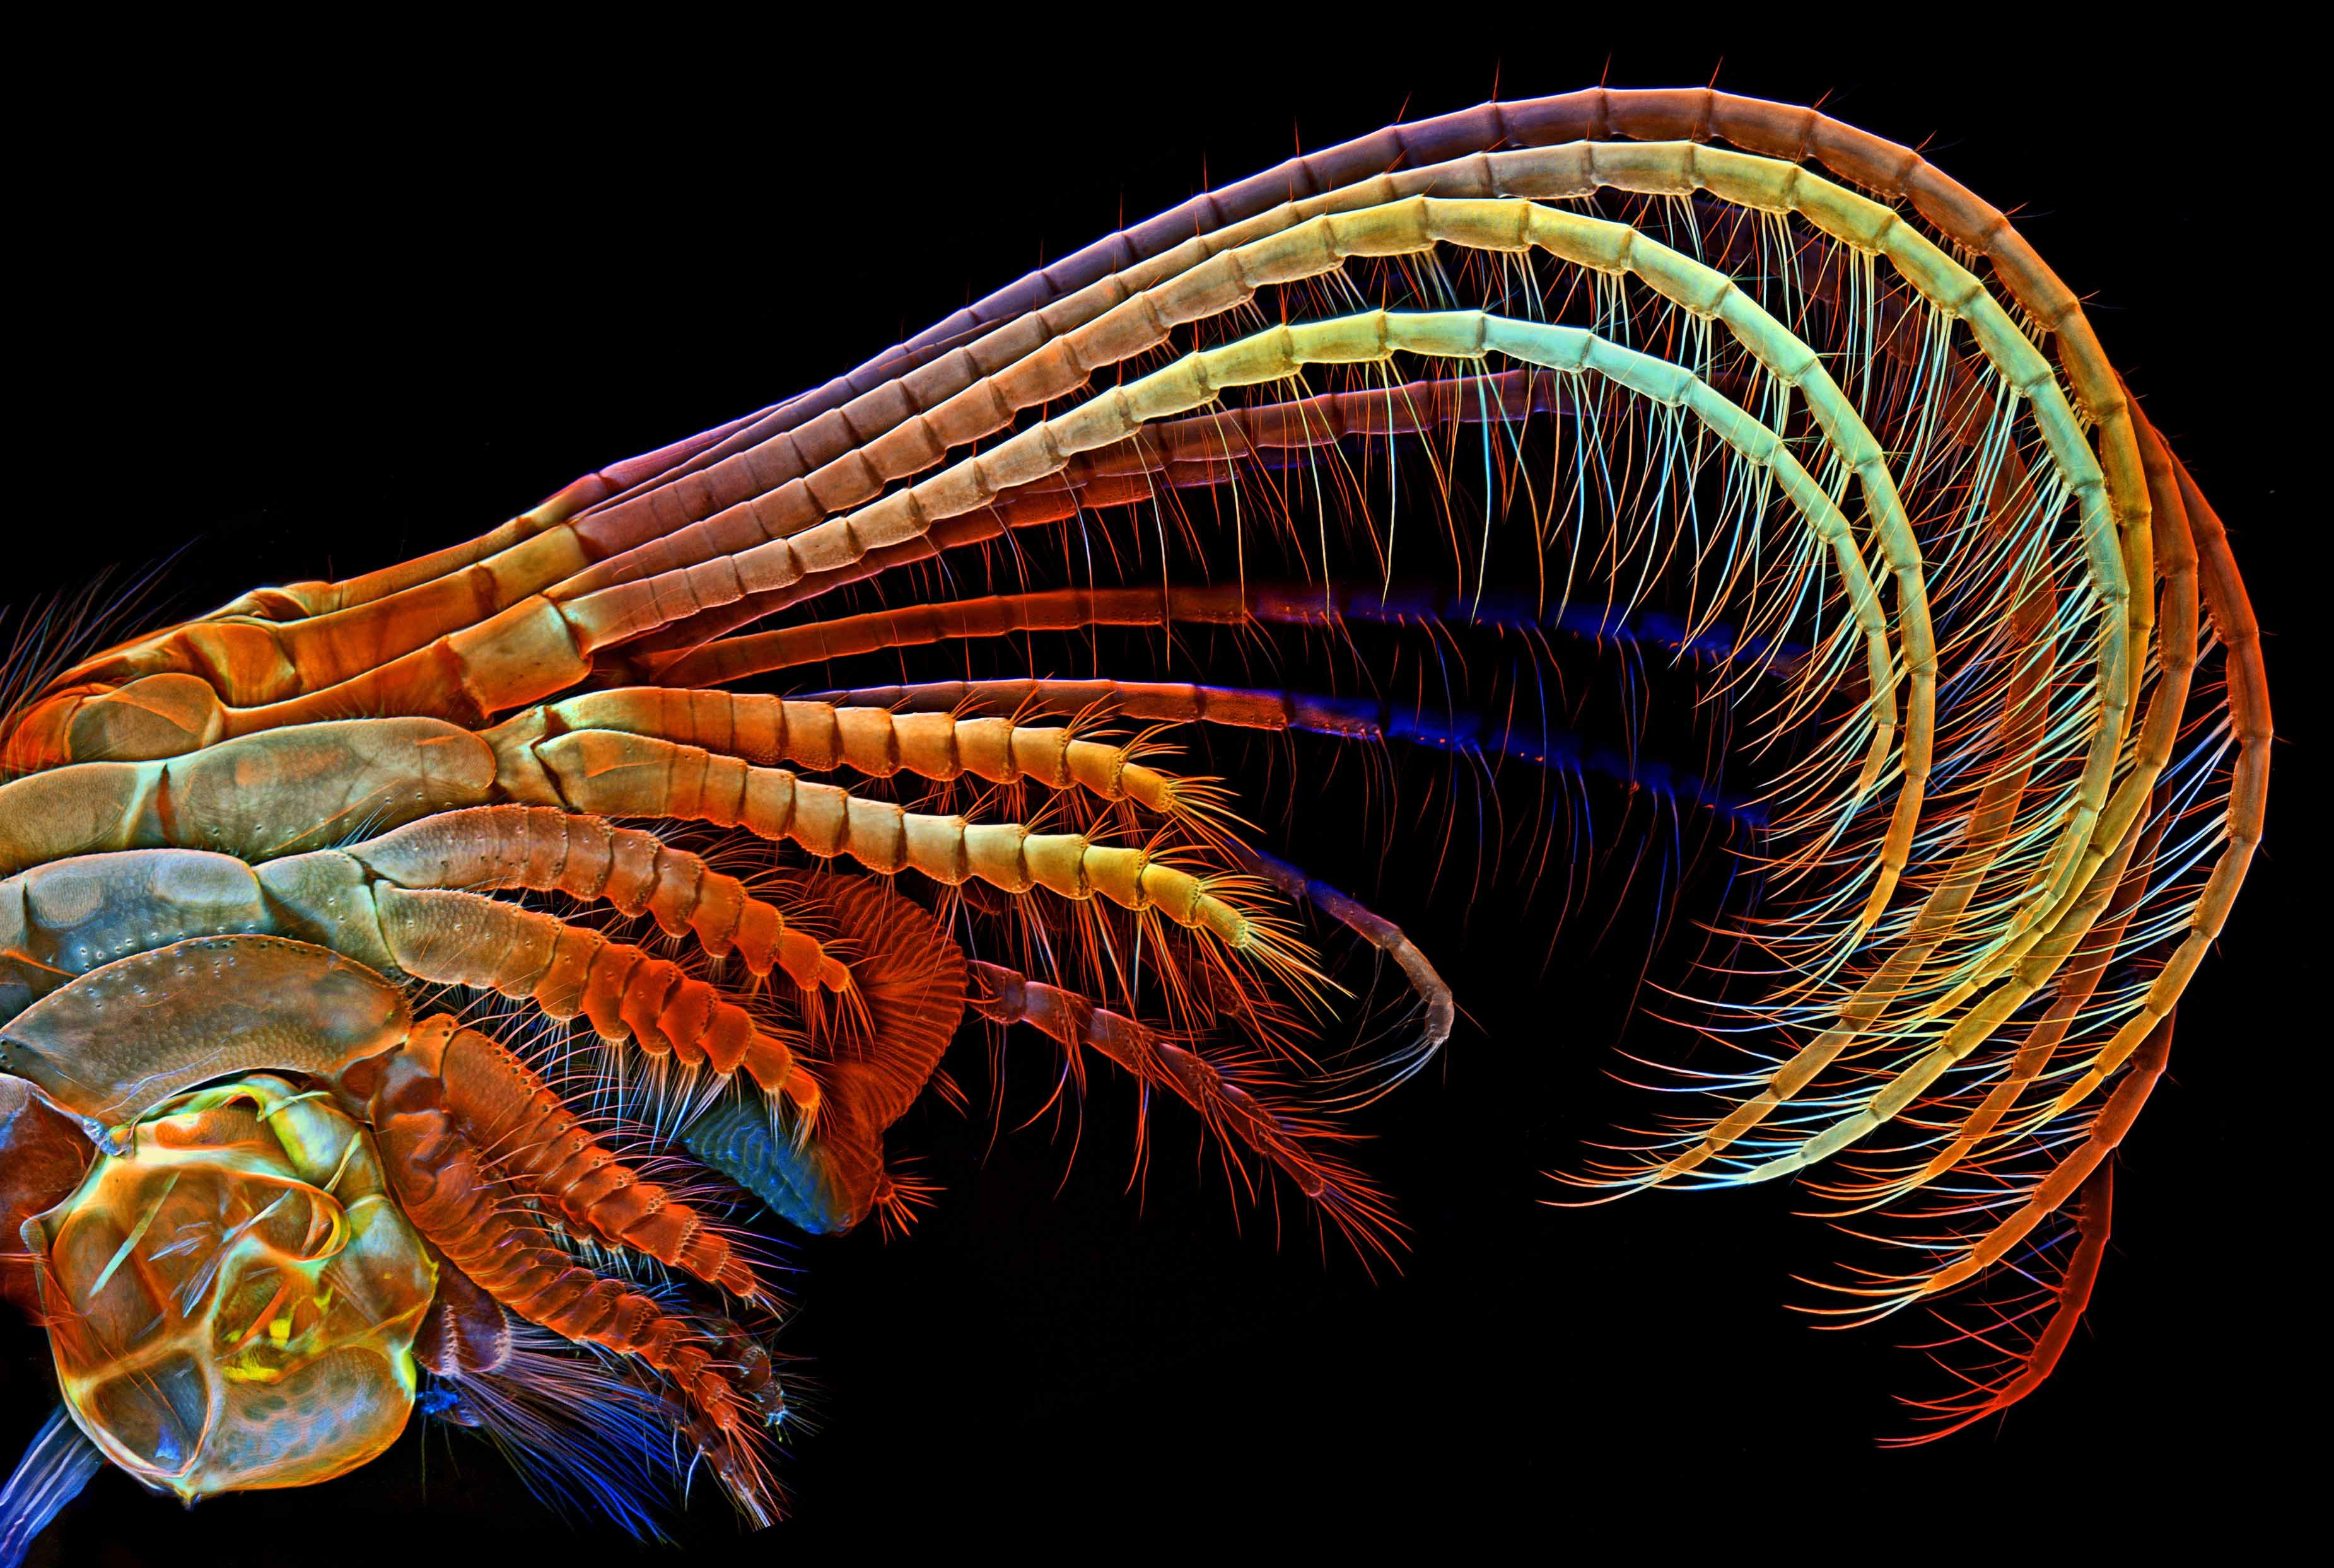 10 Award-Winning Microscope Images That Blur Science and Art